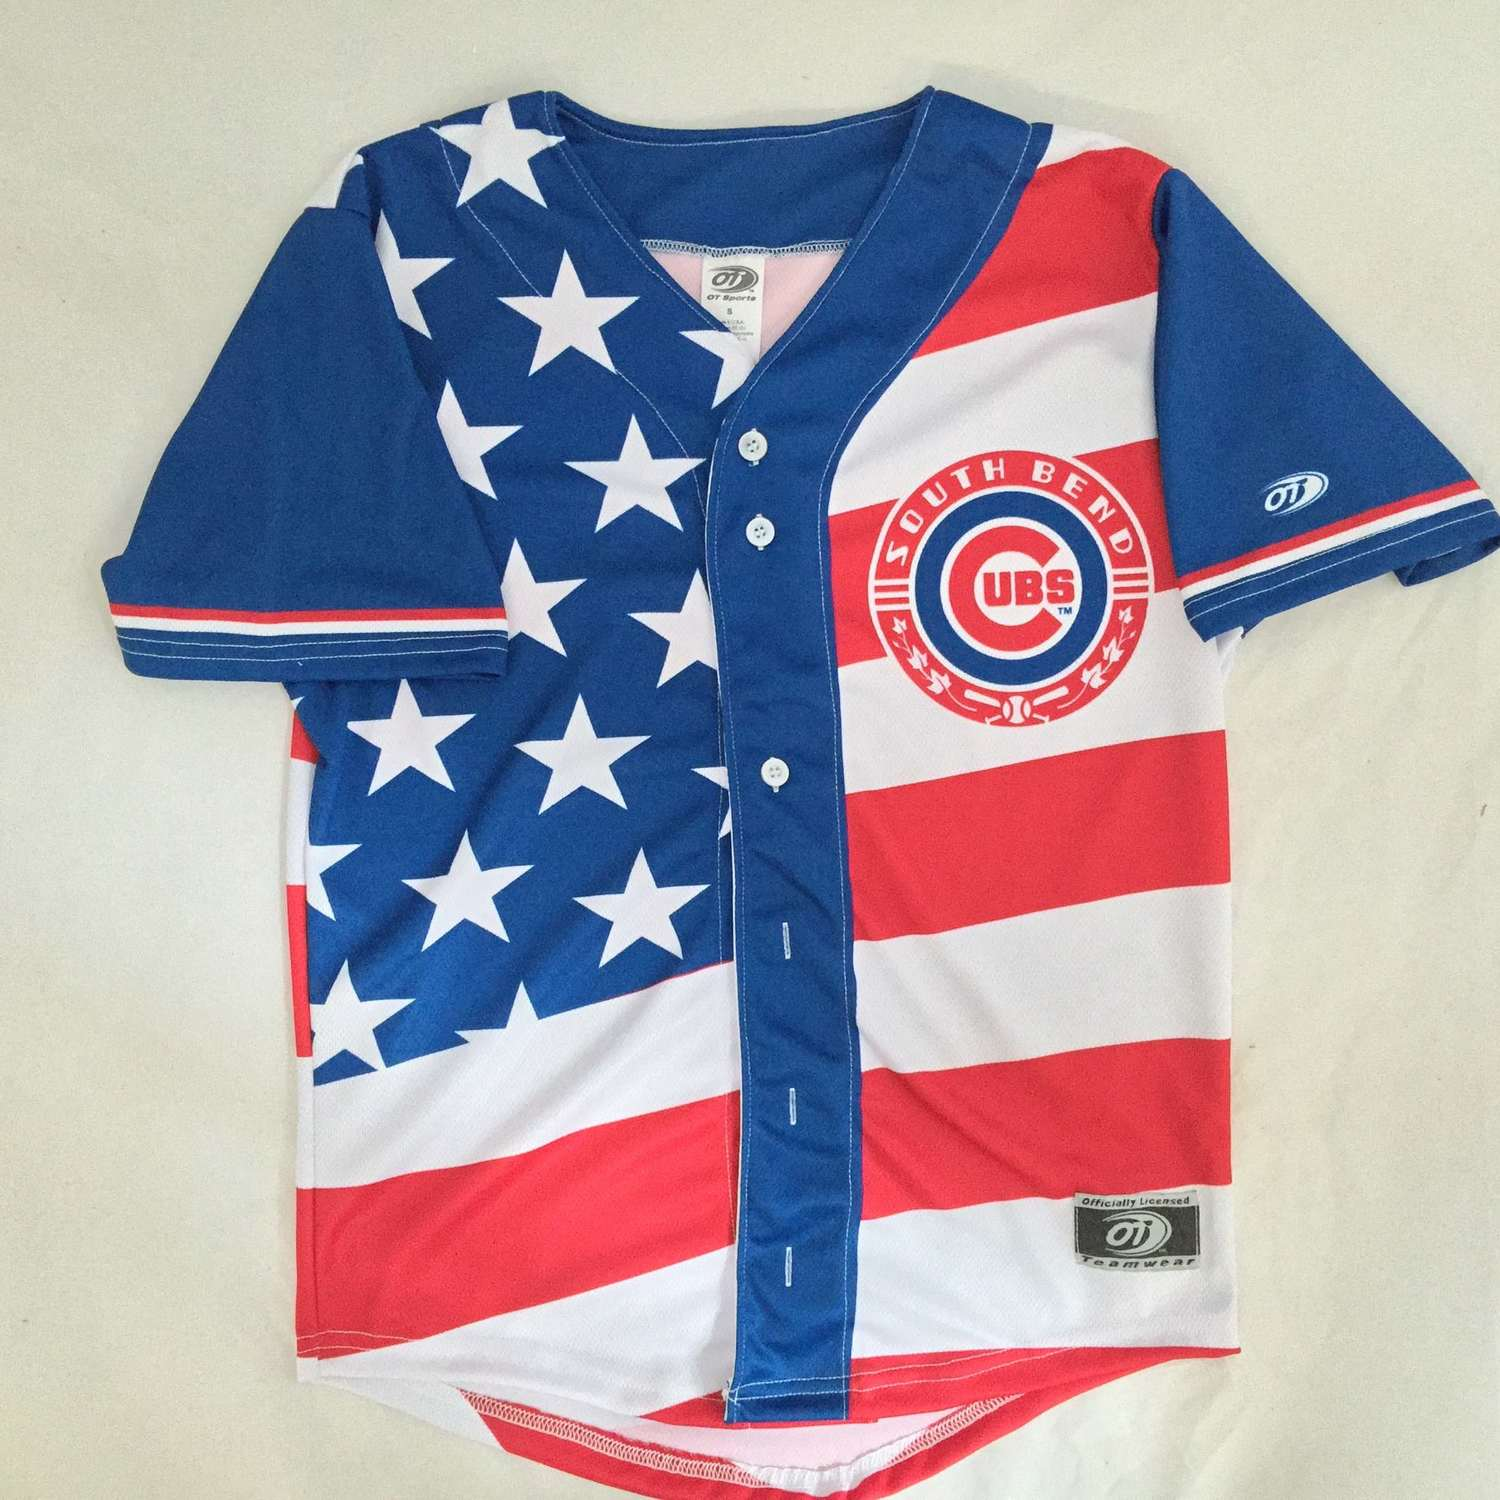 e86fa7ce4f8 Fourth of July Weekend jersey  South Bend Cubs jersey — OT Sports